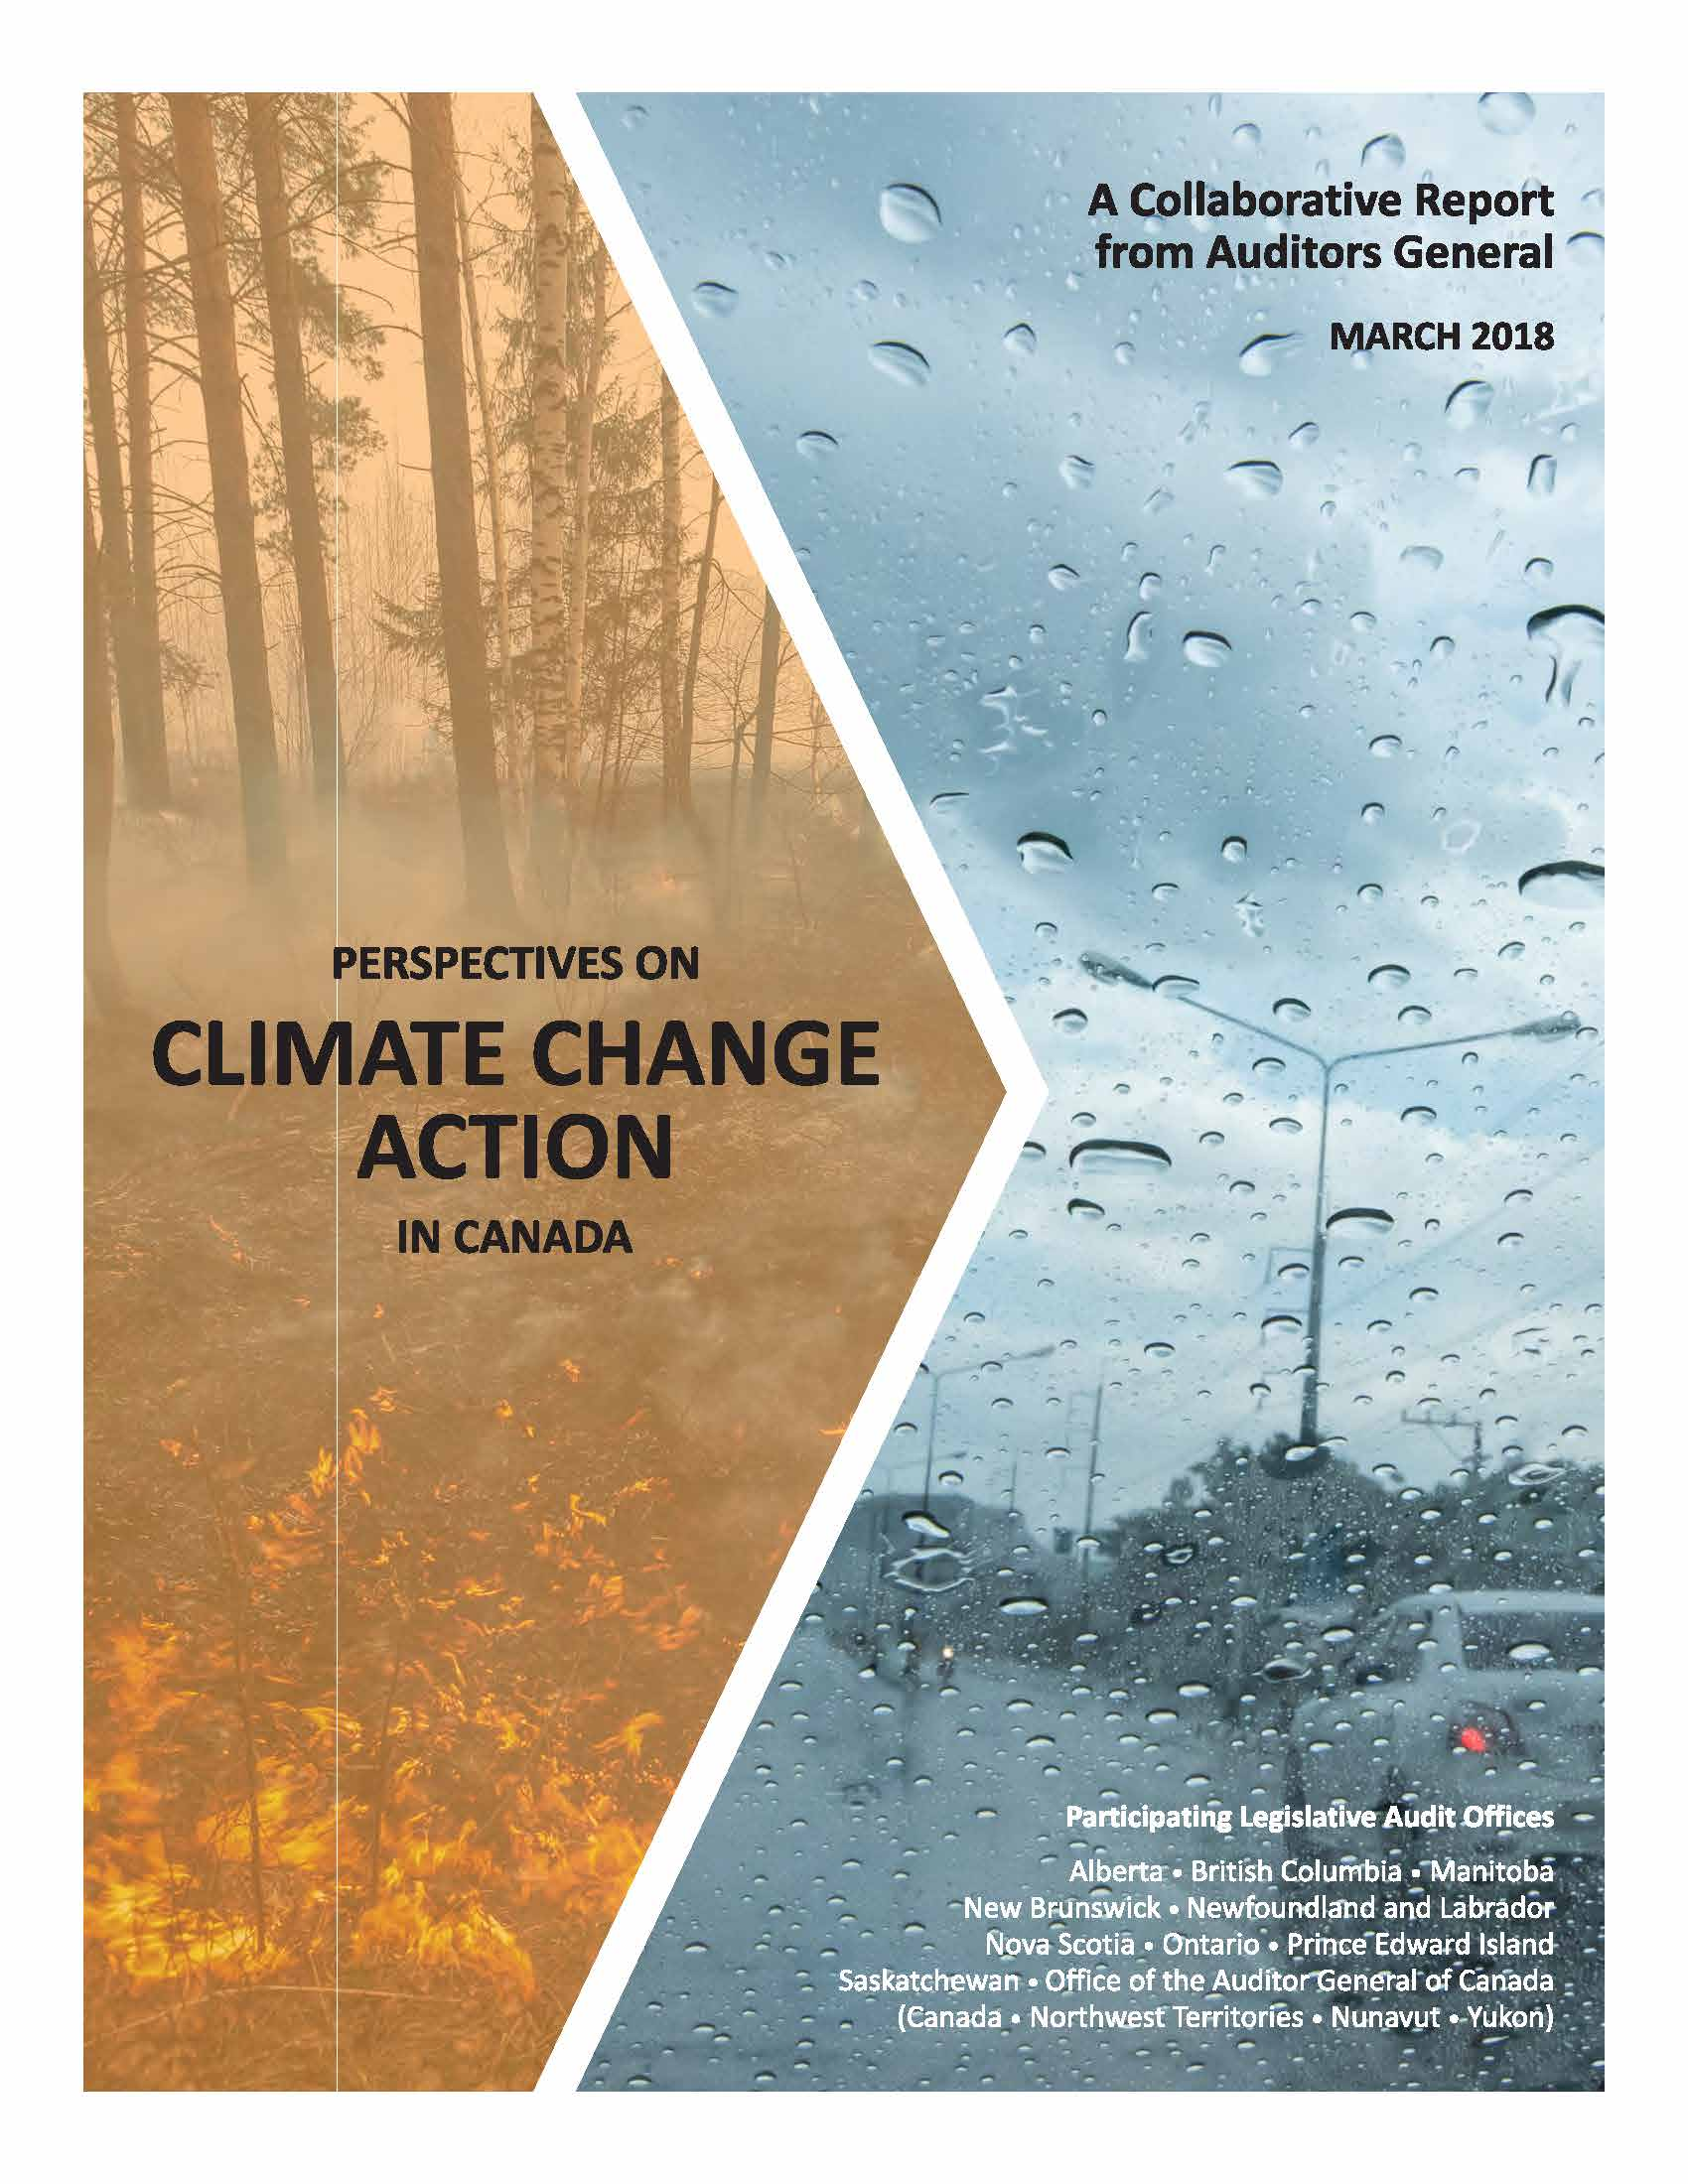 Perspectives on Climate Change Action in Canada: A Collaborative Report from Auditors General